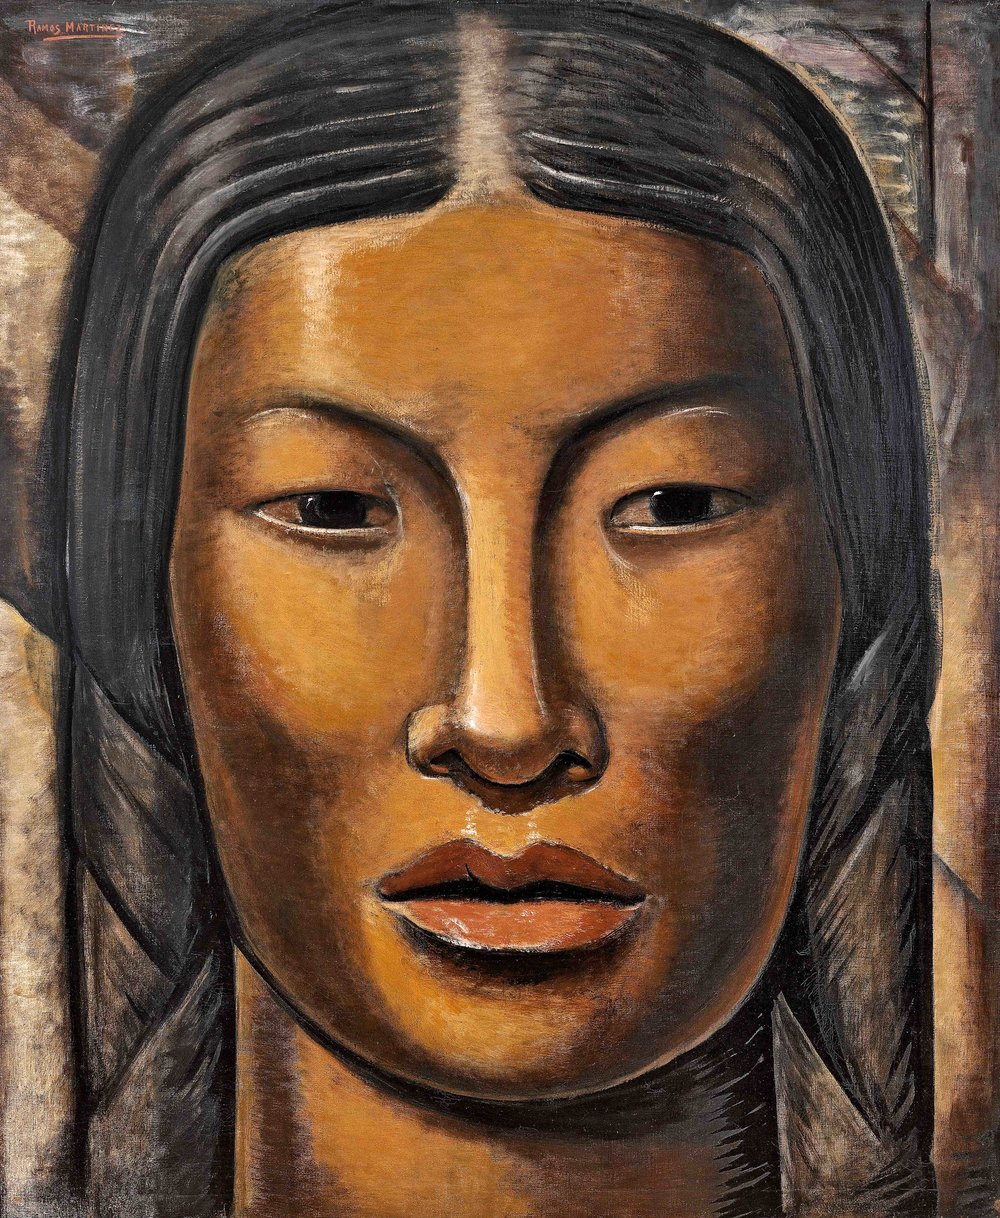 La India Maya / The Mayan Indian Woman  ca. 1936 oil on canvas / óleo sobre tela 44 x 36 inches; 111.8 x 91.4 centímetros Private collection